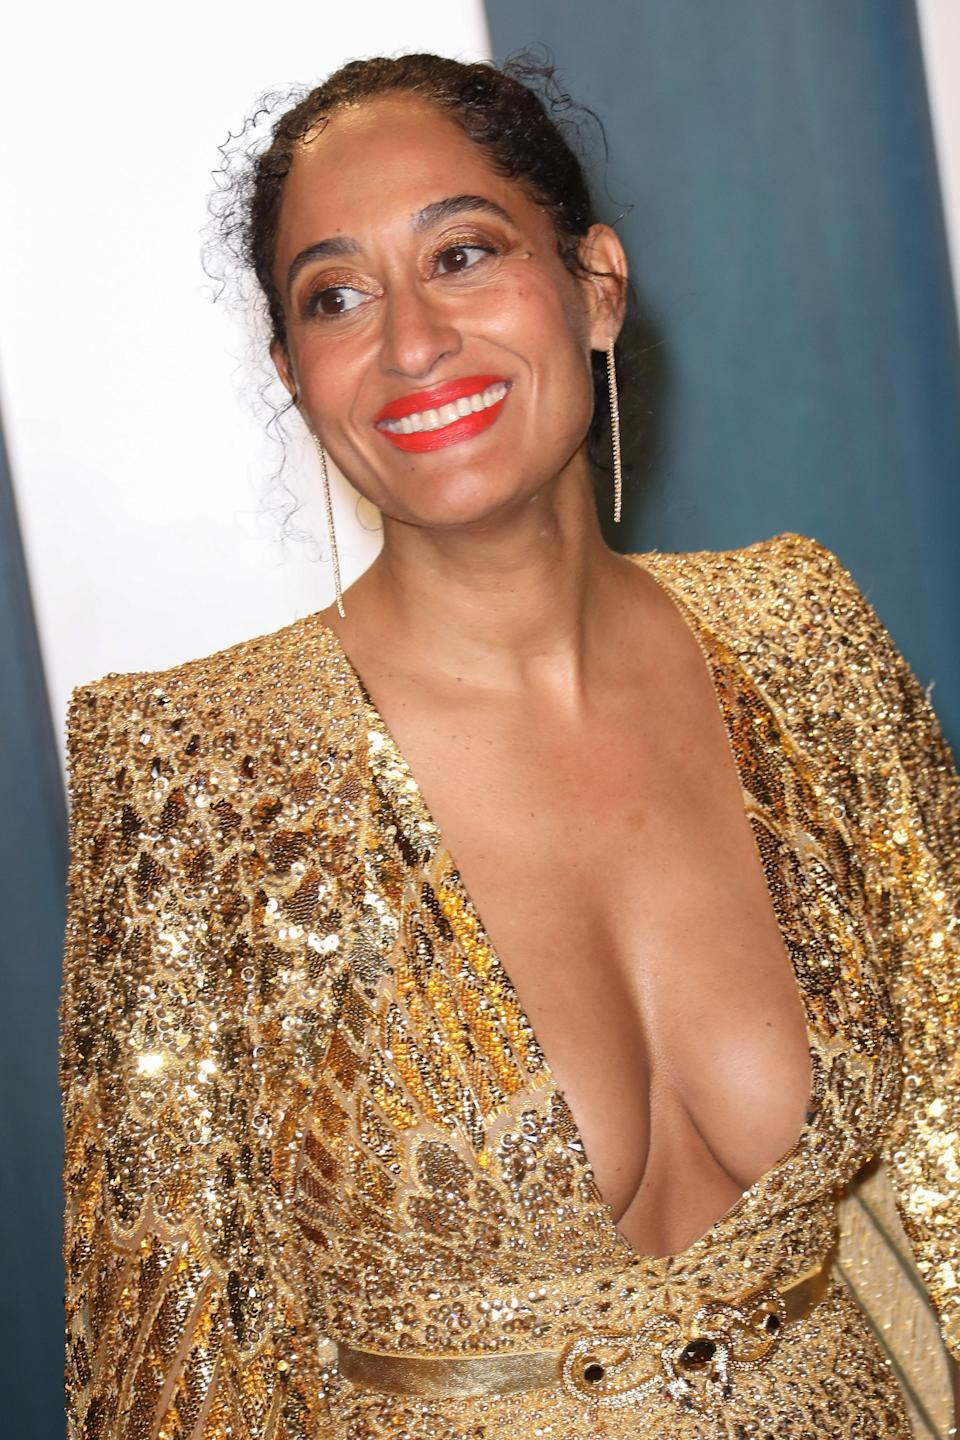 Tracee Ellis Ross is pictured at the 2020 Vanity Fair Oscar Party